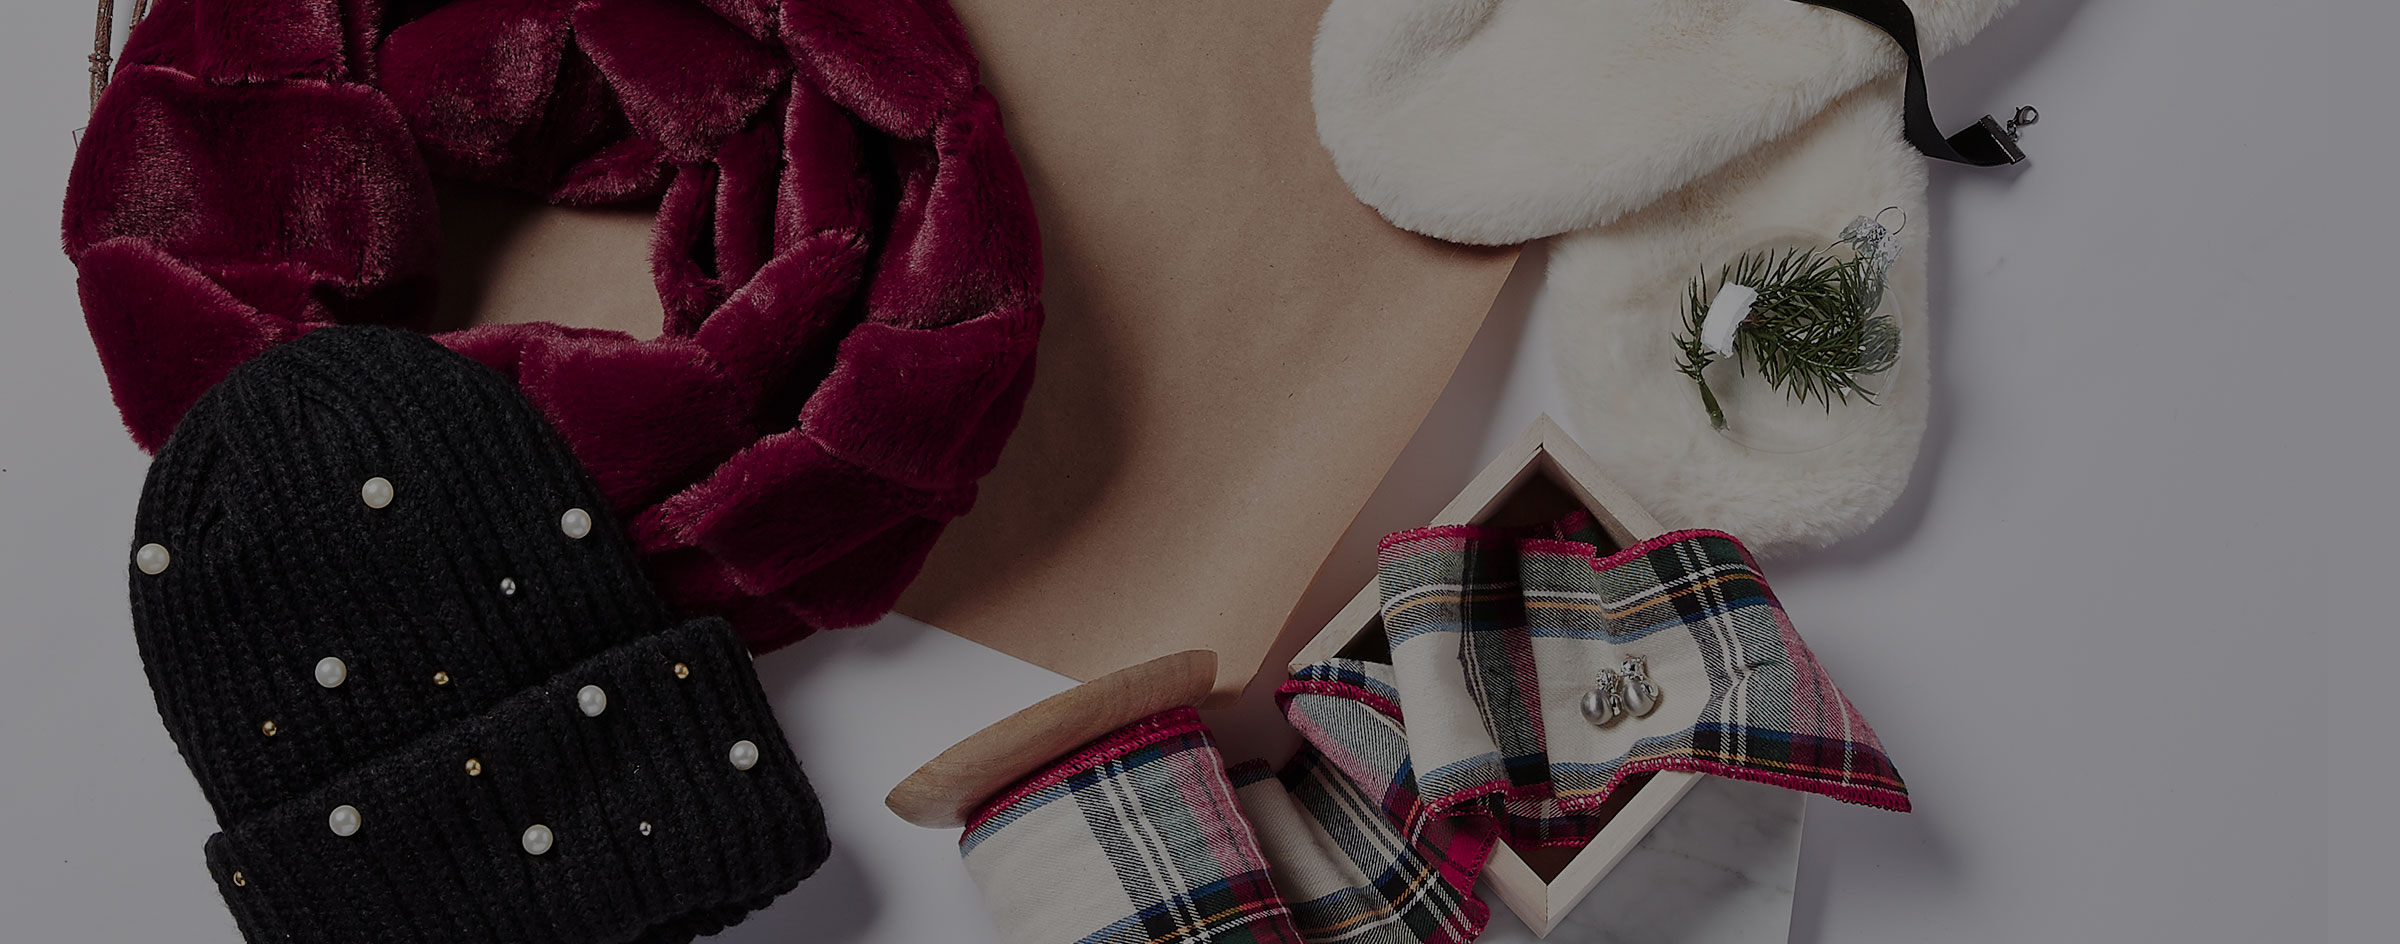 Laura Petites - Gift Guide